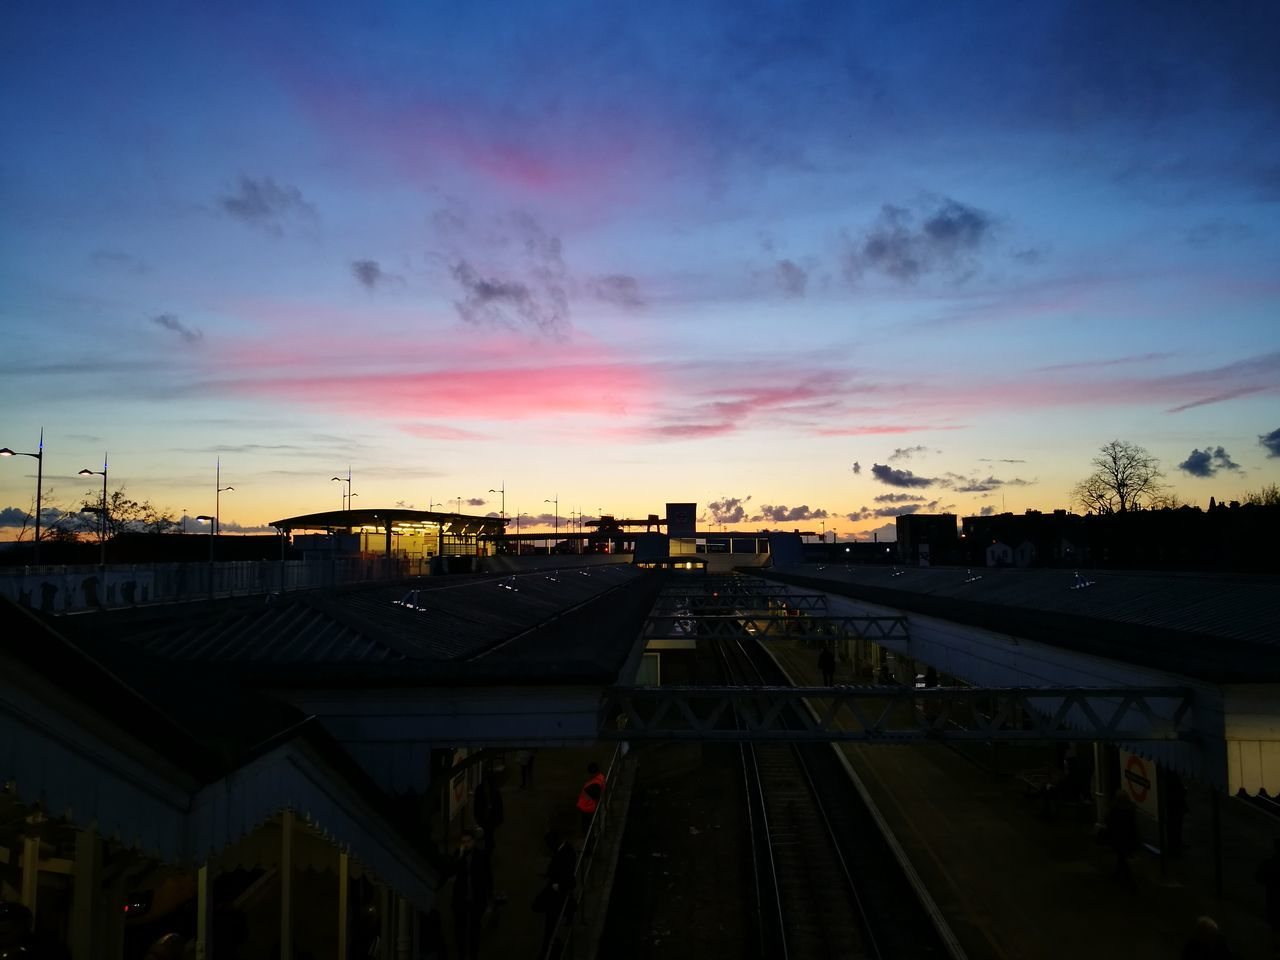 sunset, sky, transportation, built structure, rail transportation, railroad track, architecture, public transportation, high angle view, cloud - sky, building exterior, city, silhouette, outdoors, no people, nature, day